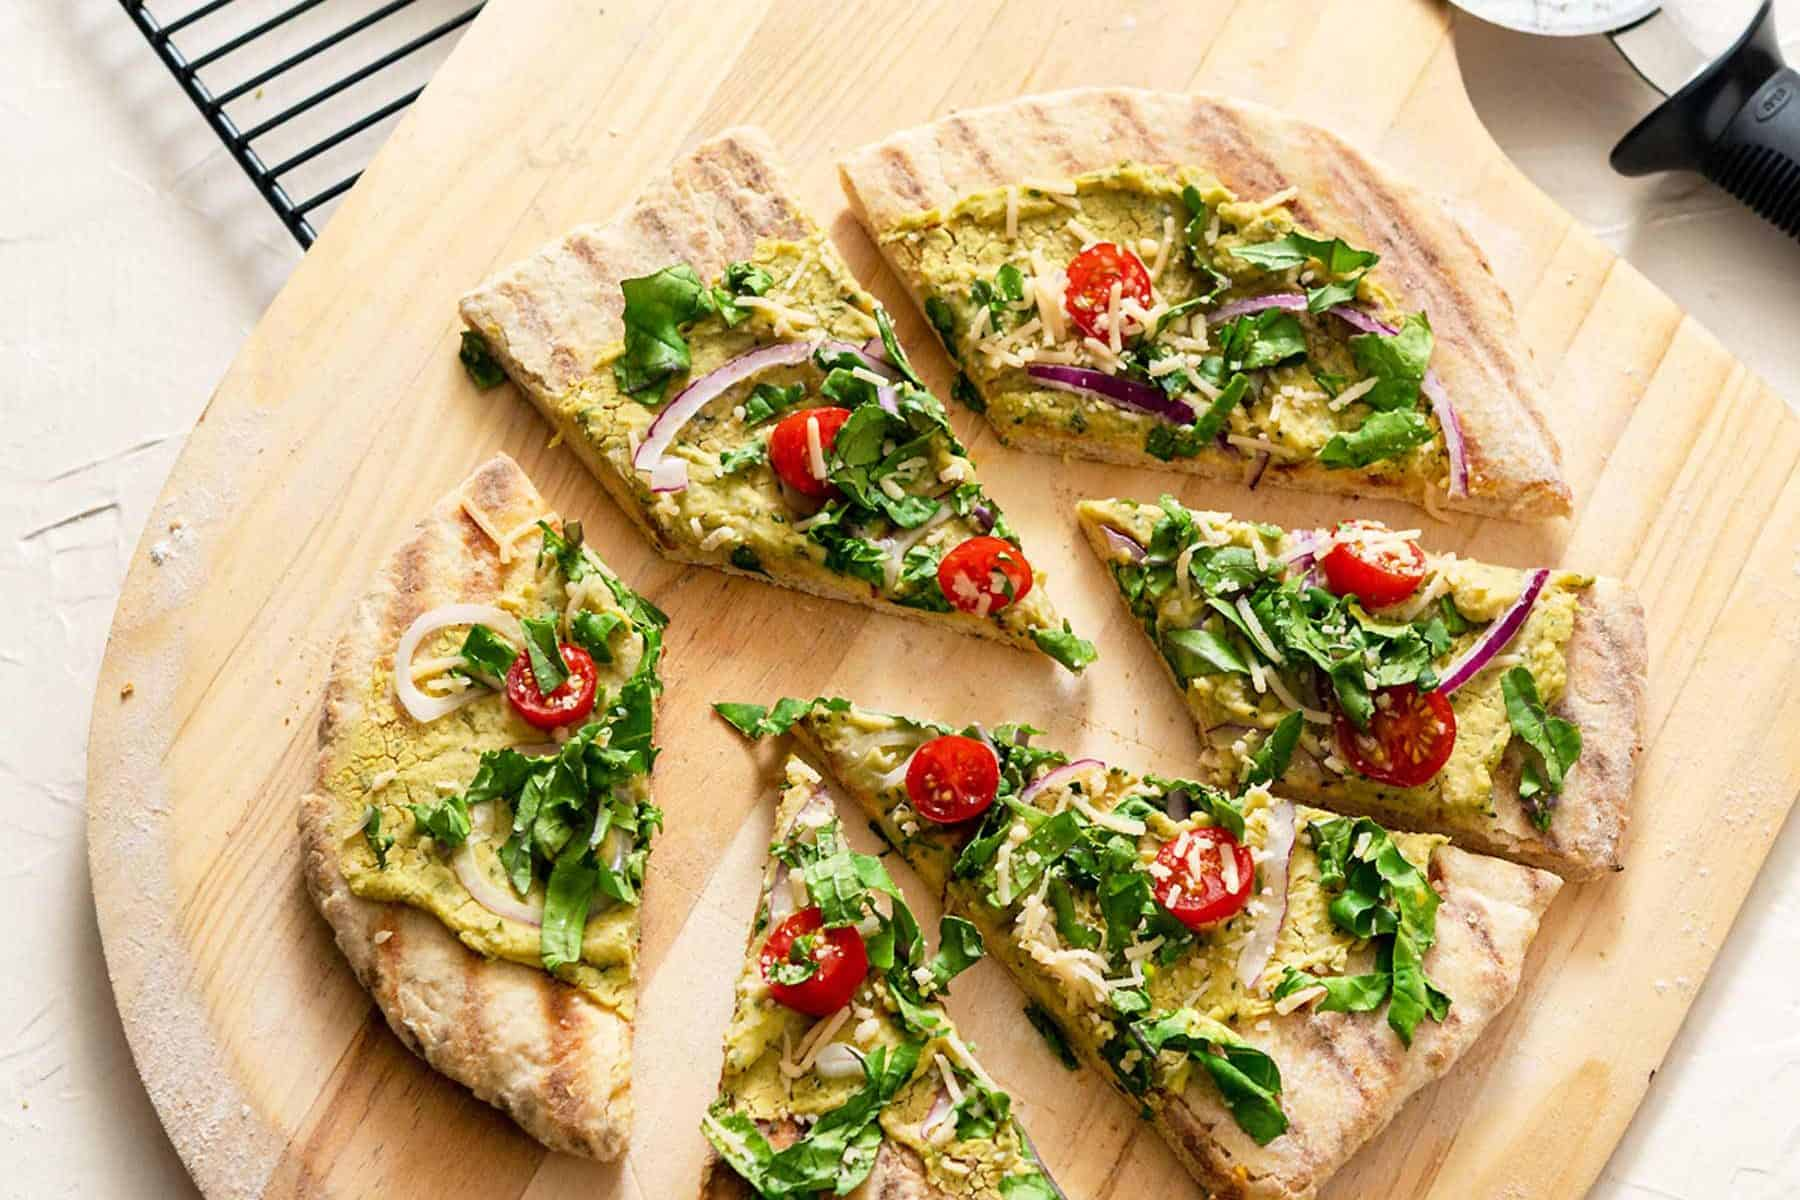 Grilled Sourdough Flatbread cut into slices on a wooden pizza peel